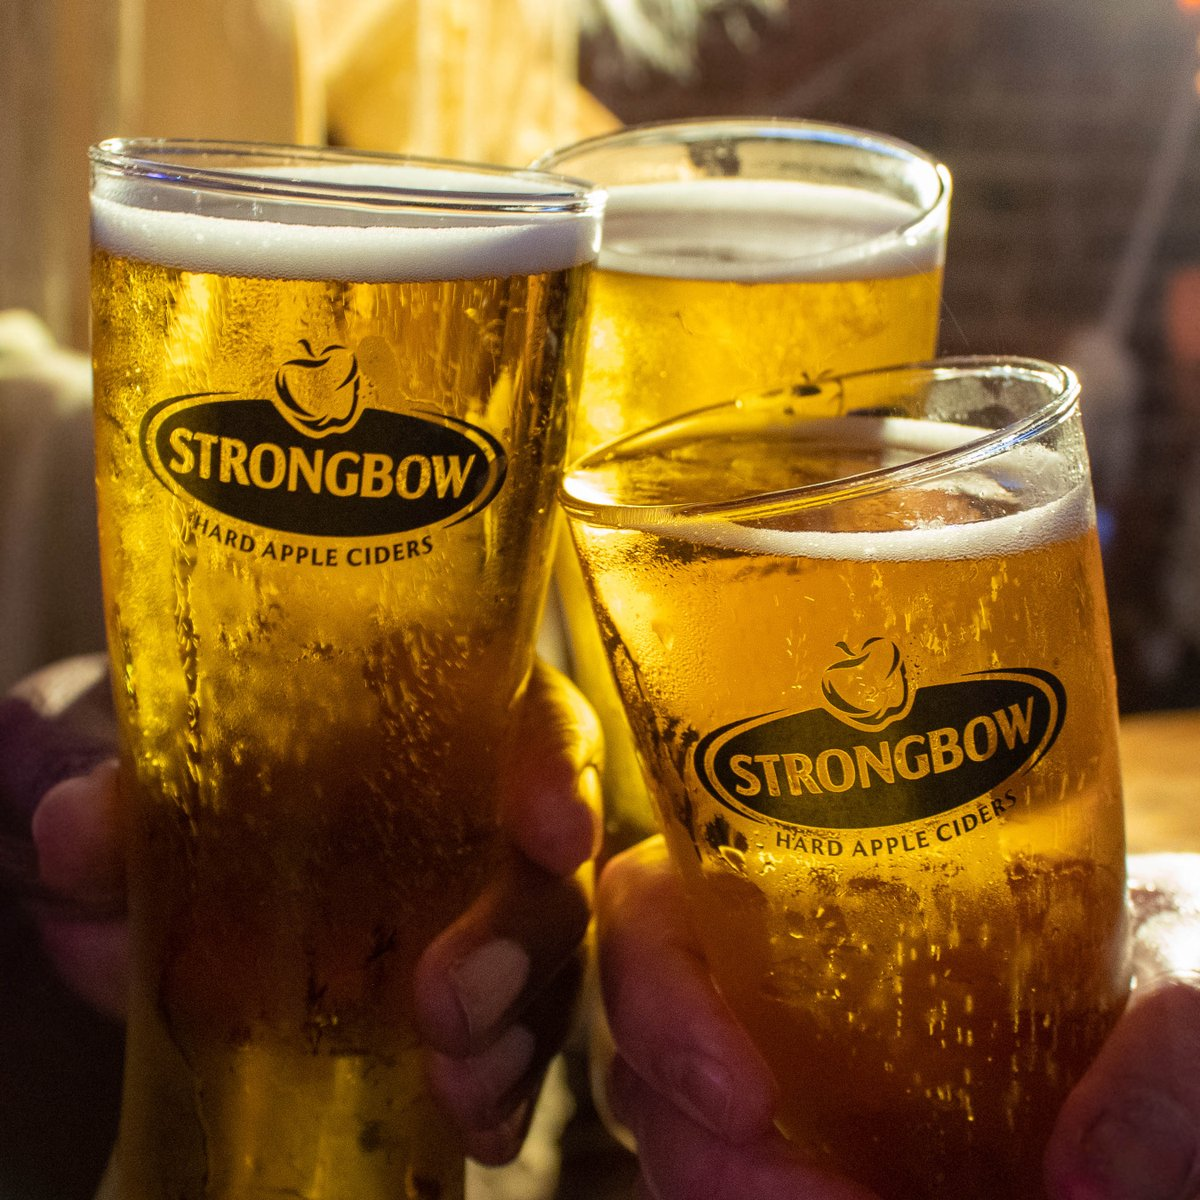 Starting the New Year off right! #Strongbow https://t.co/cKK4VIjUrN